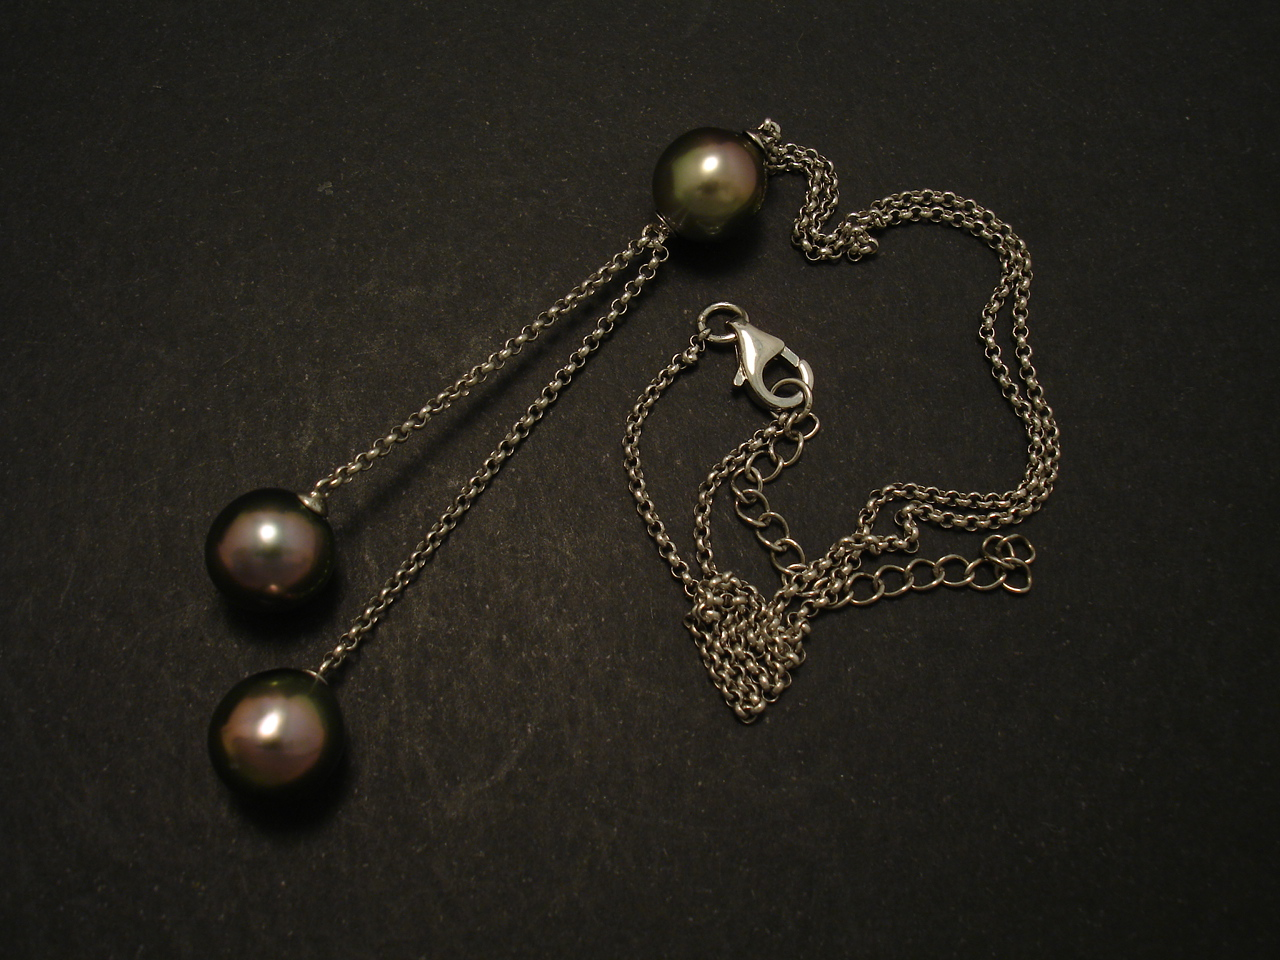 pearls pearl item online shop of black beautiful samocvety on natural necklace